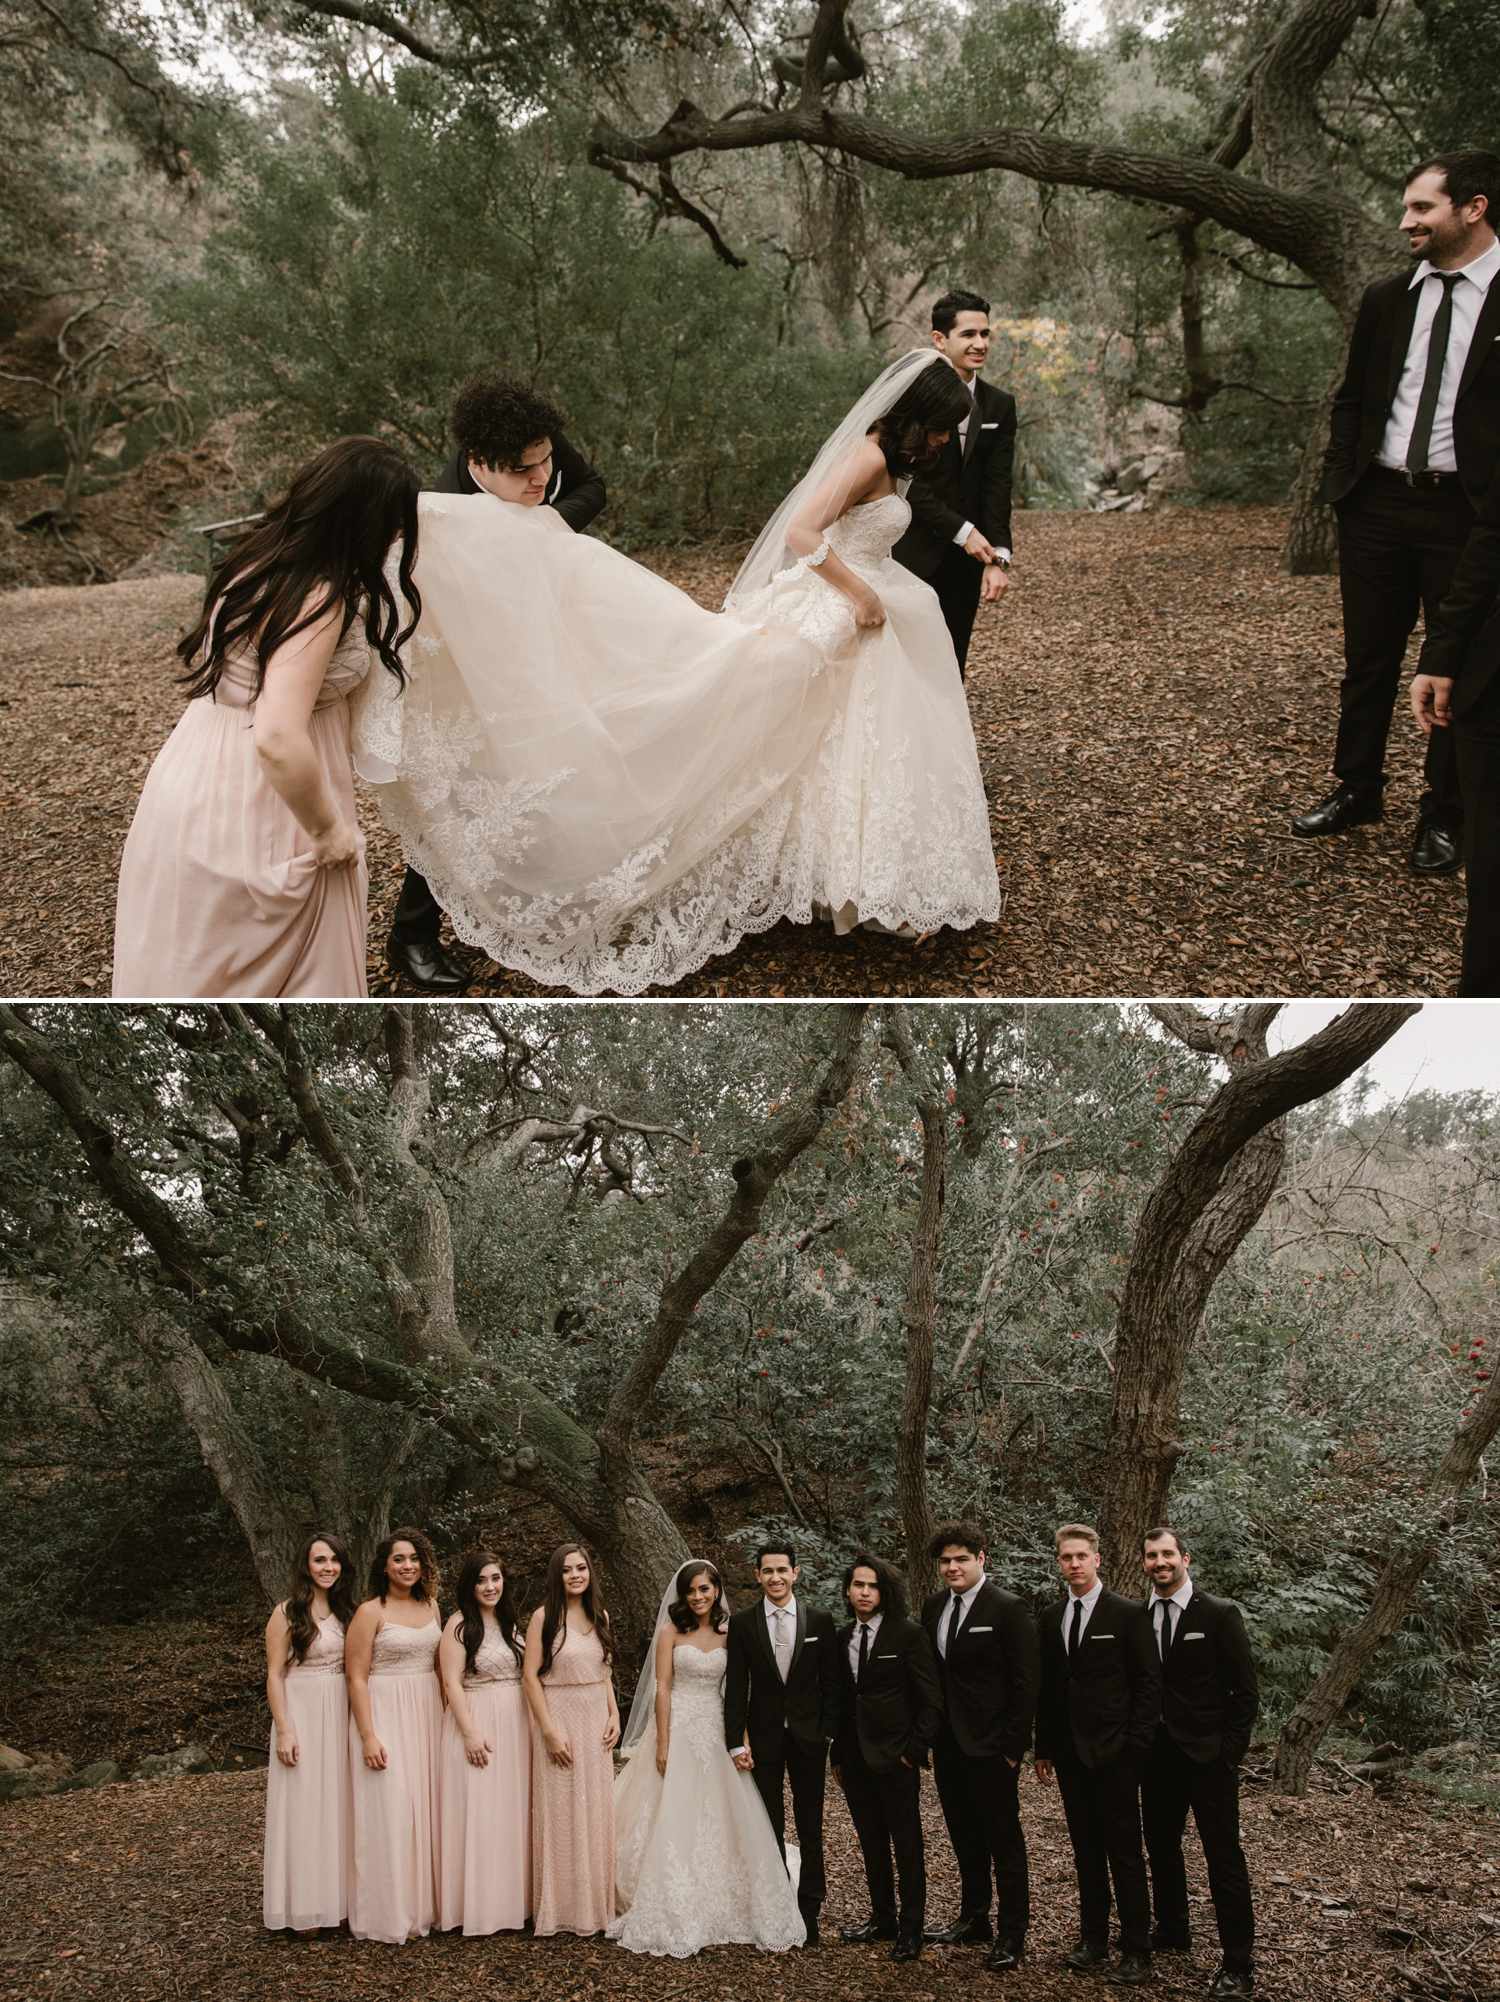 Wedding party formals at Oak Canyon Nature Center by Paige Nelson